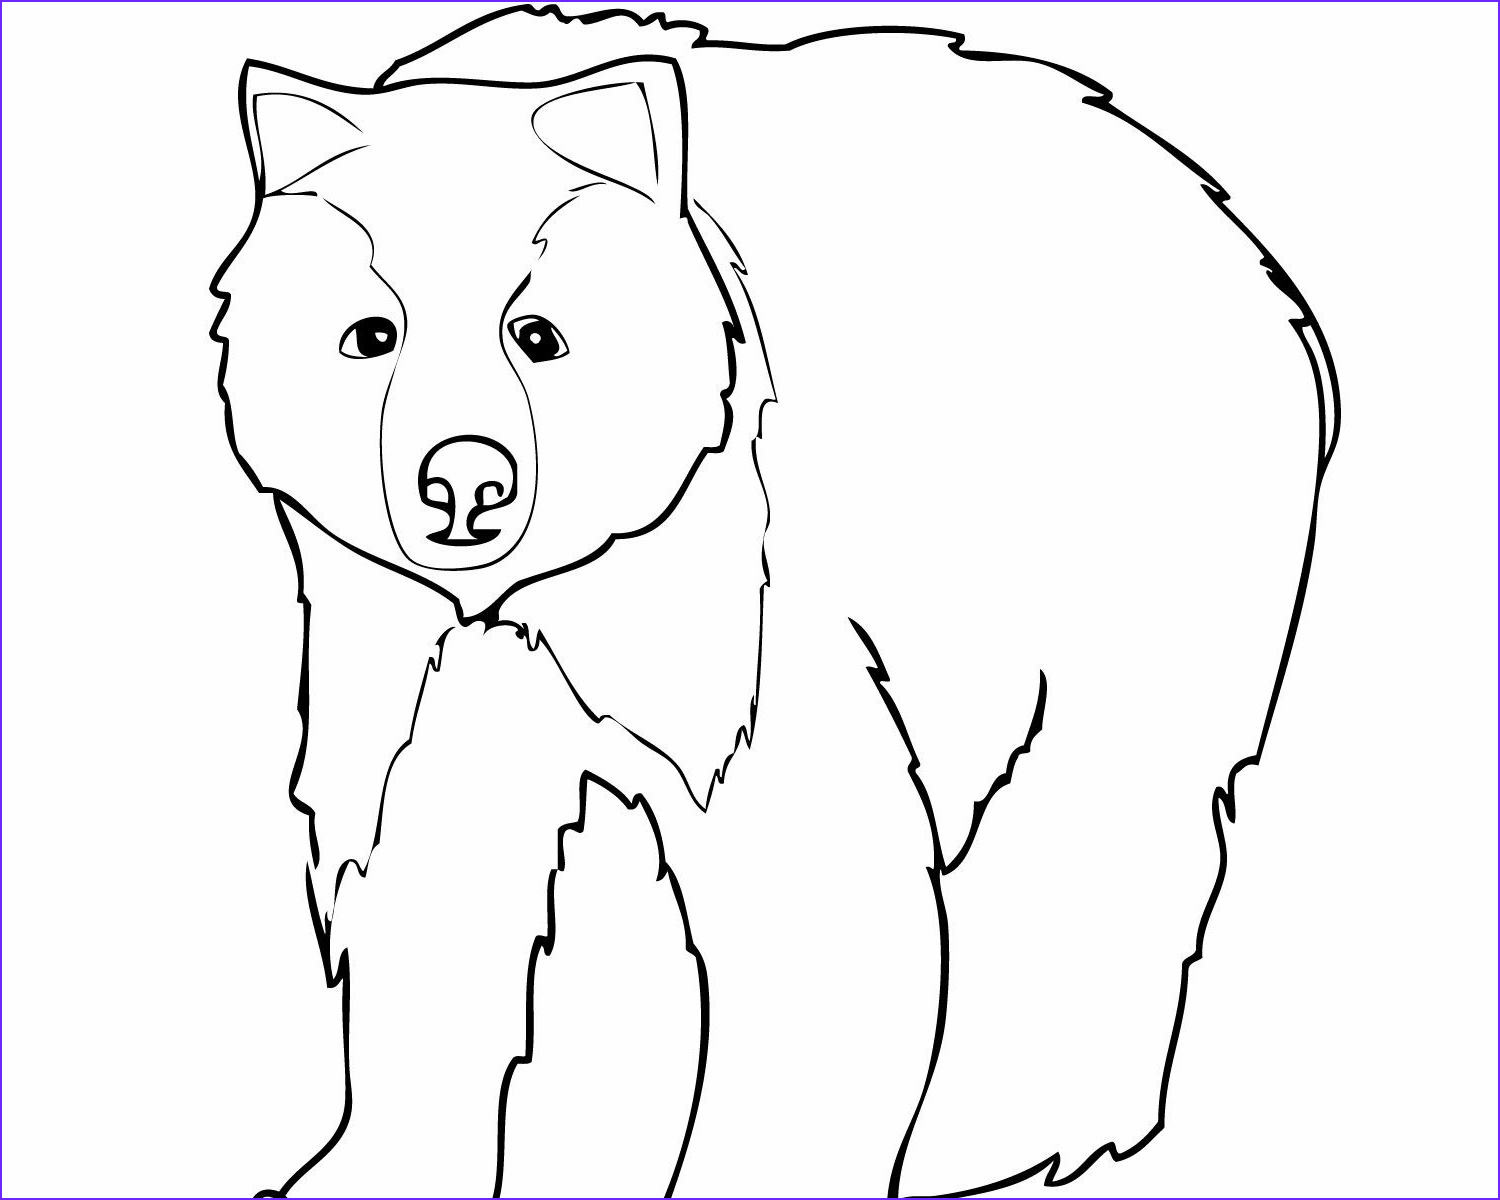 Black Bear Coloring Page Beautiful Gallery Coloring Pages Black Bear At Getcolorings